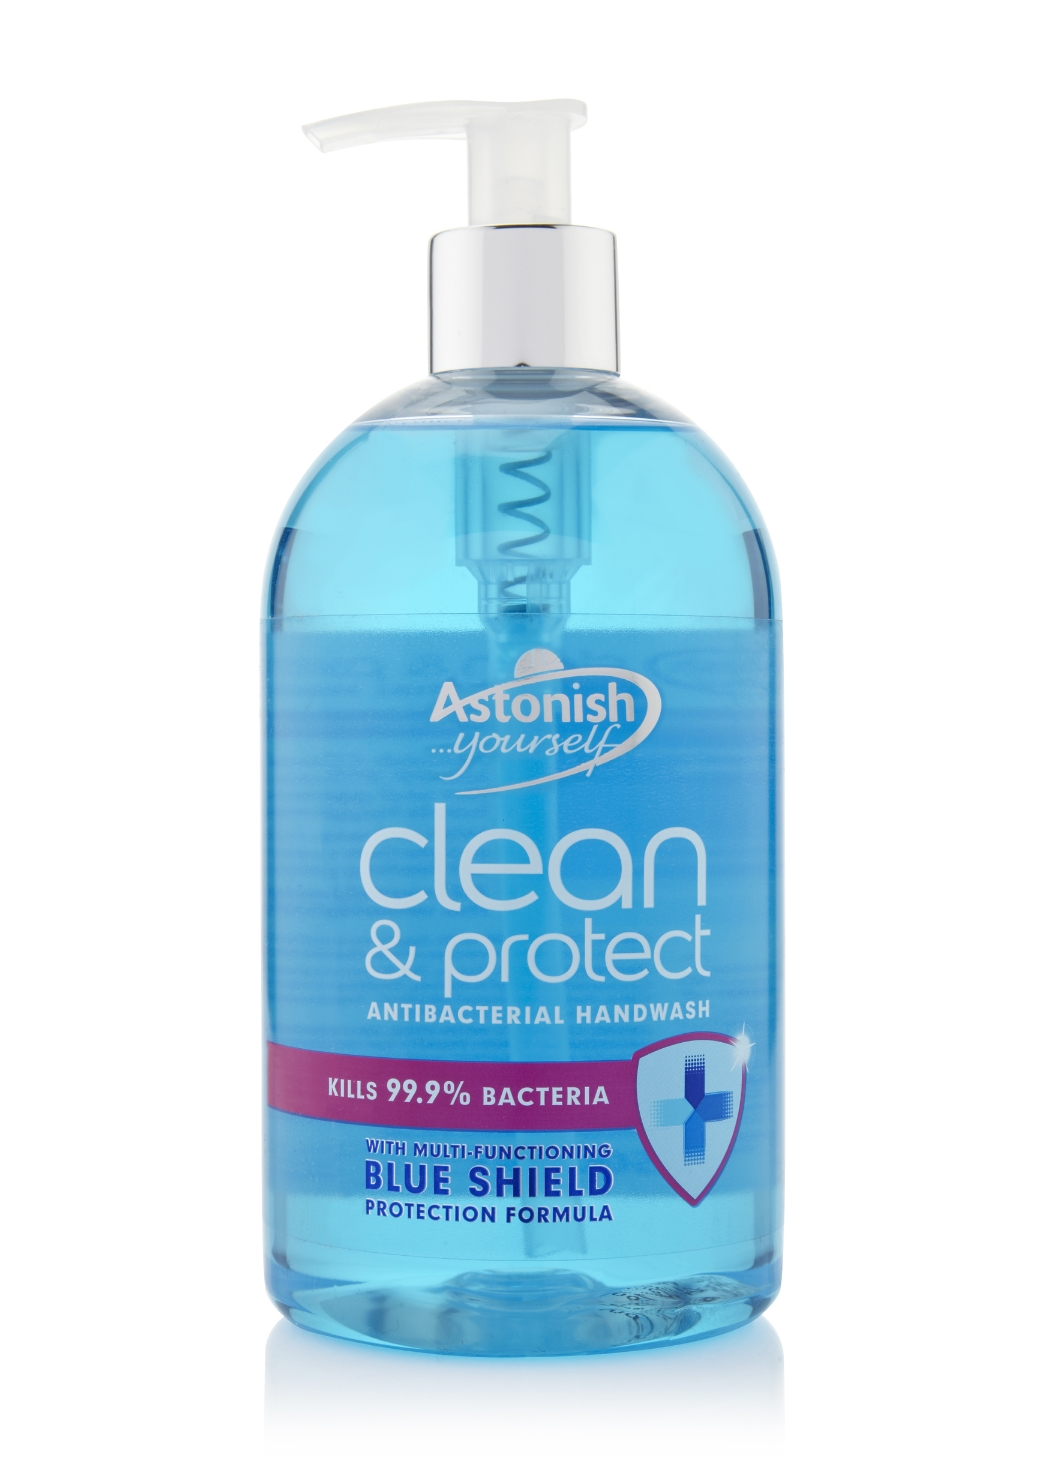 Astonish Clean & Protect Hand Wash 500ml (1).jpg